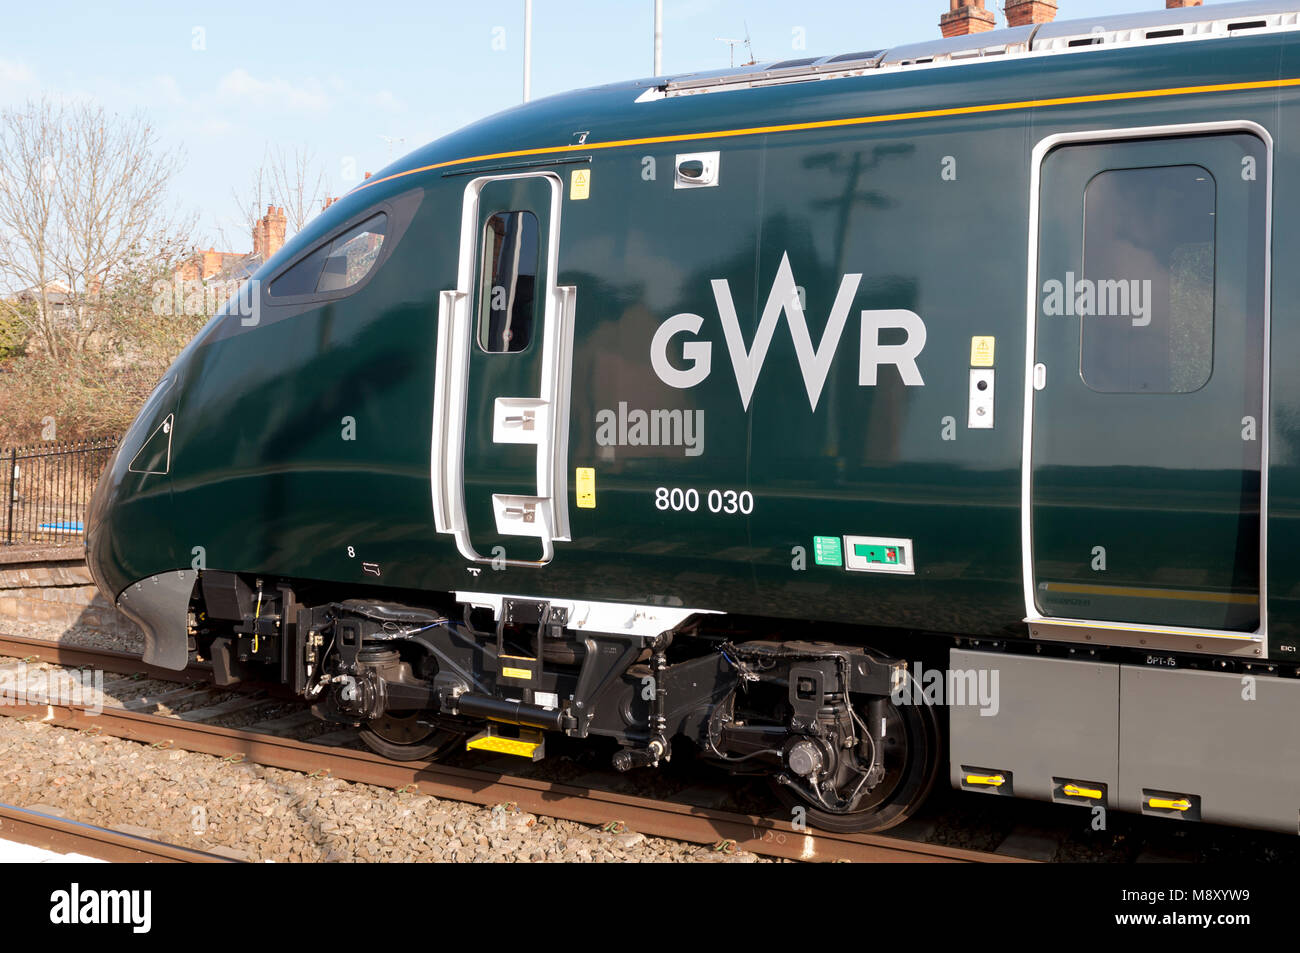 Gwr 800 Stock Photos Images Alamy Wiring X Y W Great Western Railway Class Iet At Evesham Station Worcestershire Uk Image